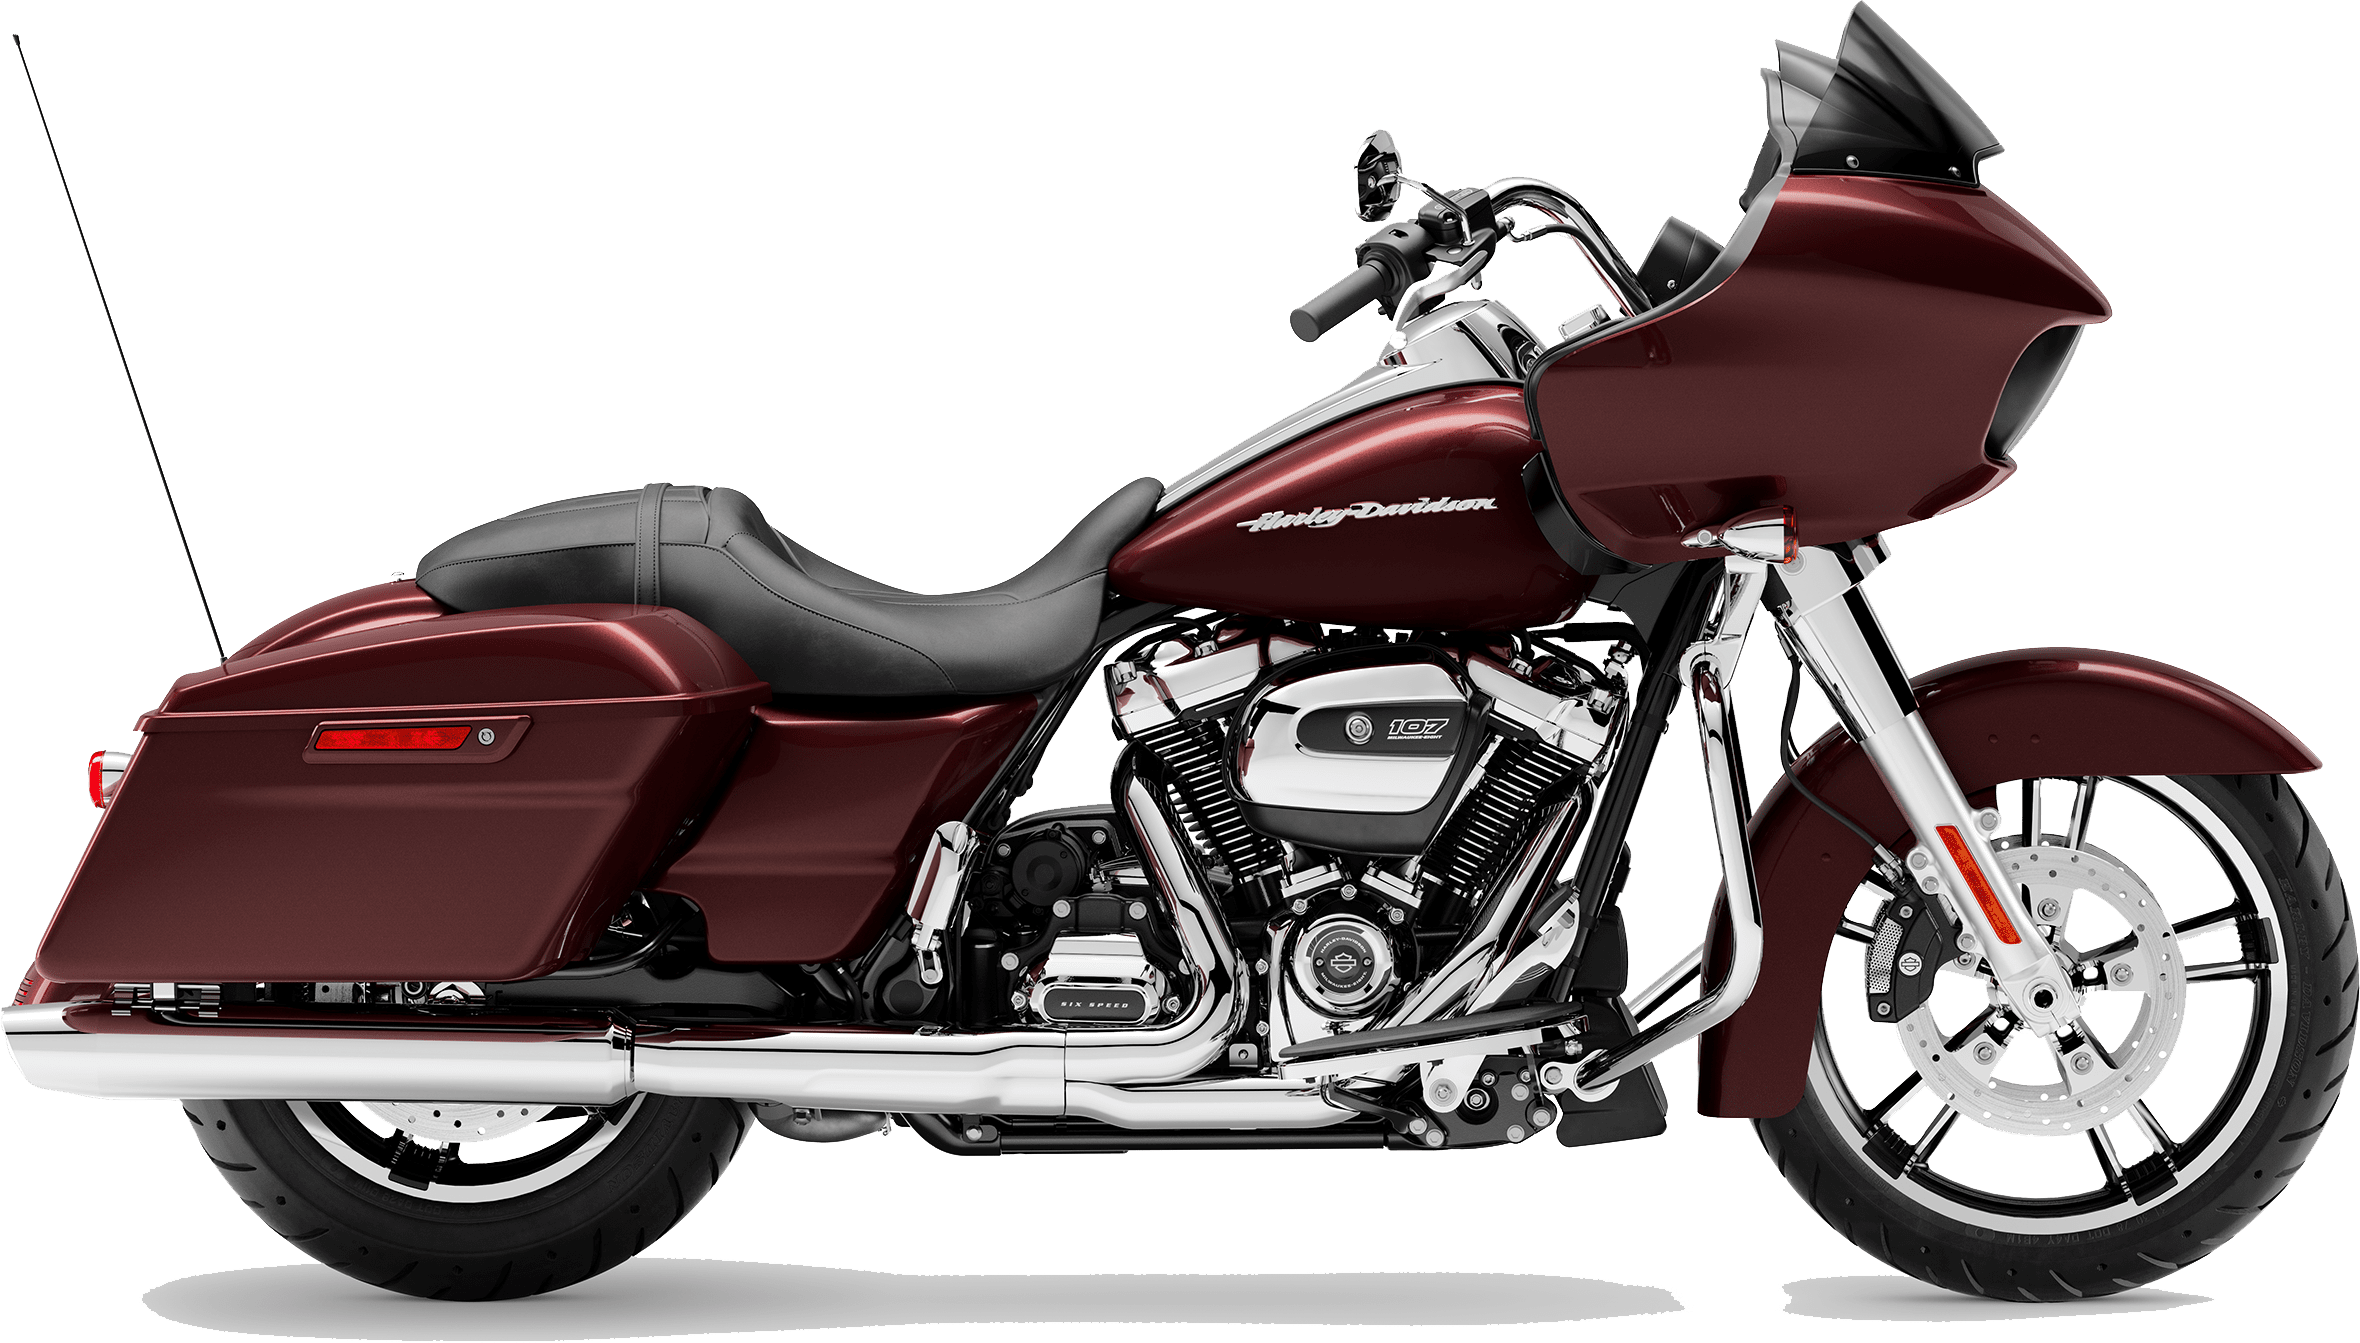 2019 Harley-Davidson H-D Touring Road Glide Twisted Cherry